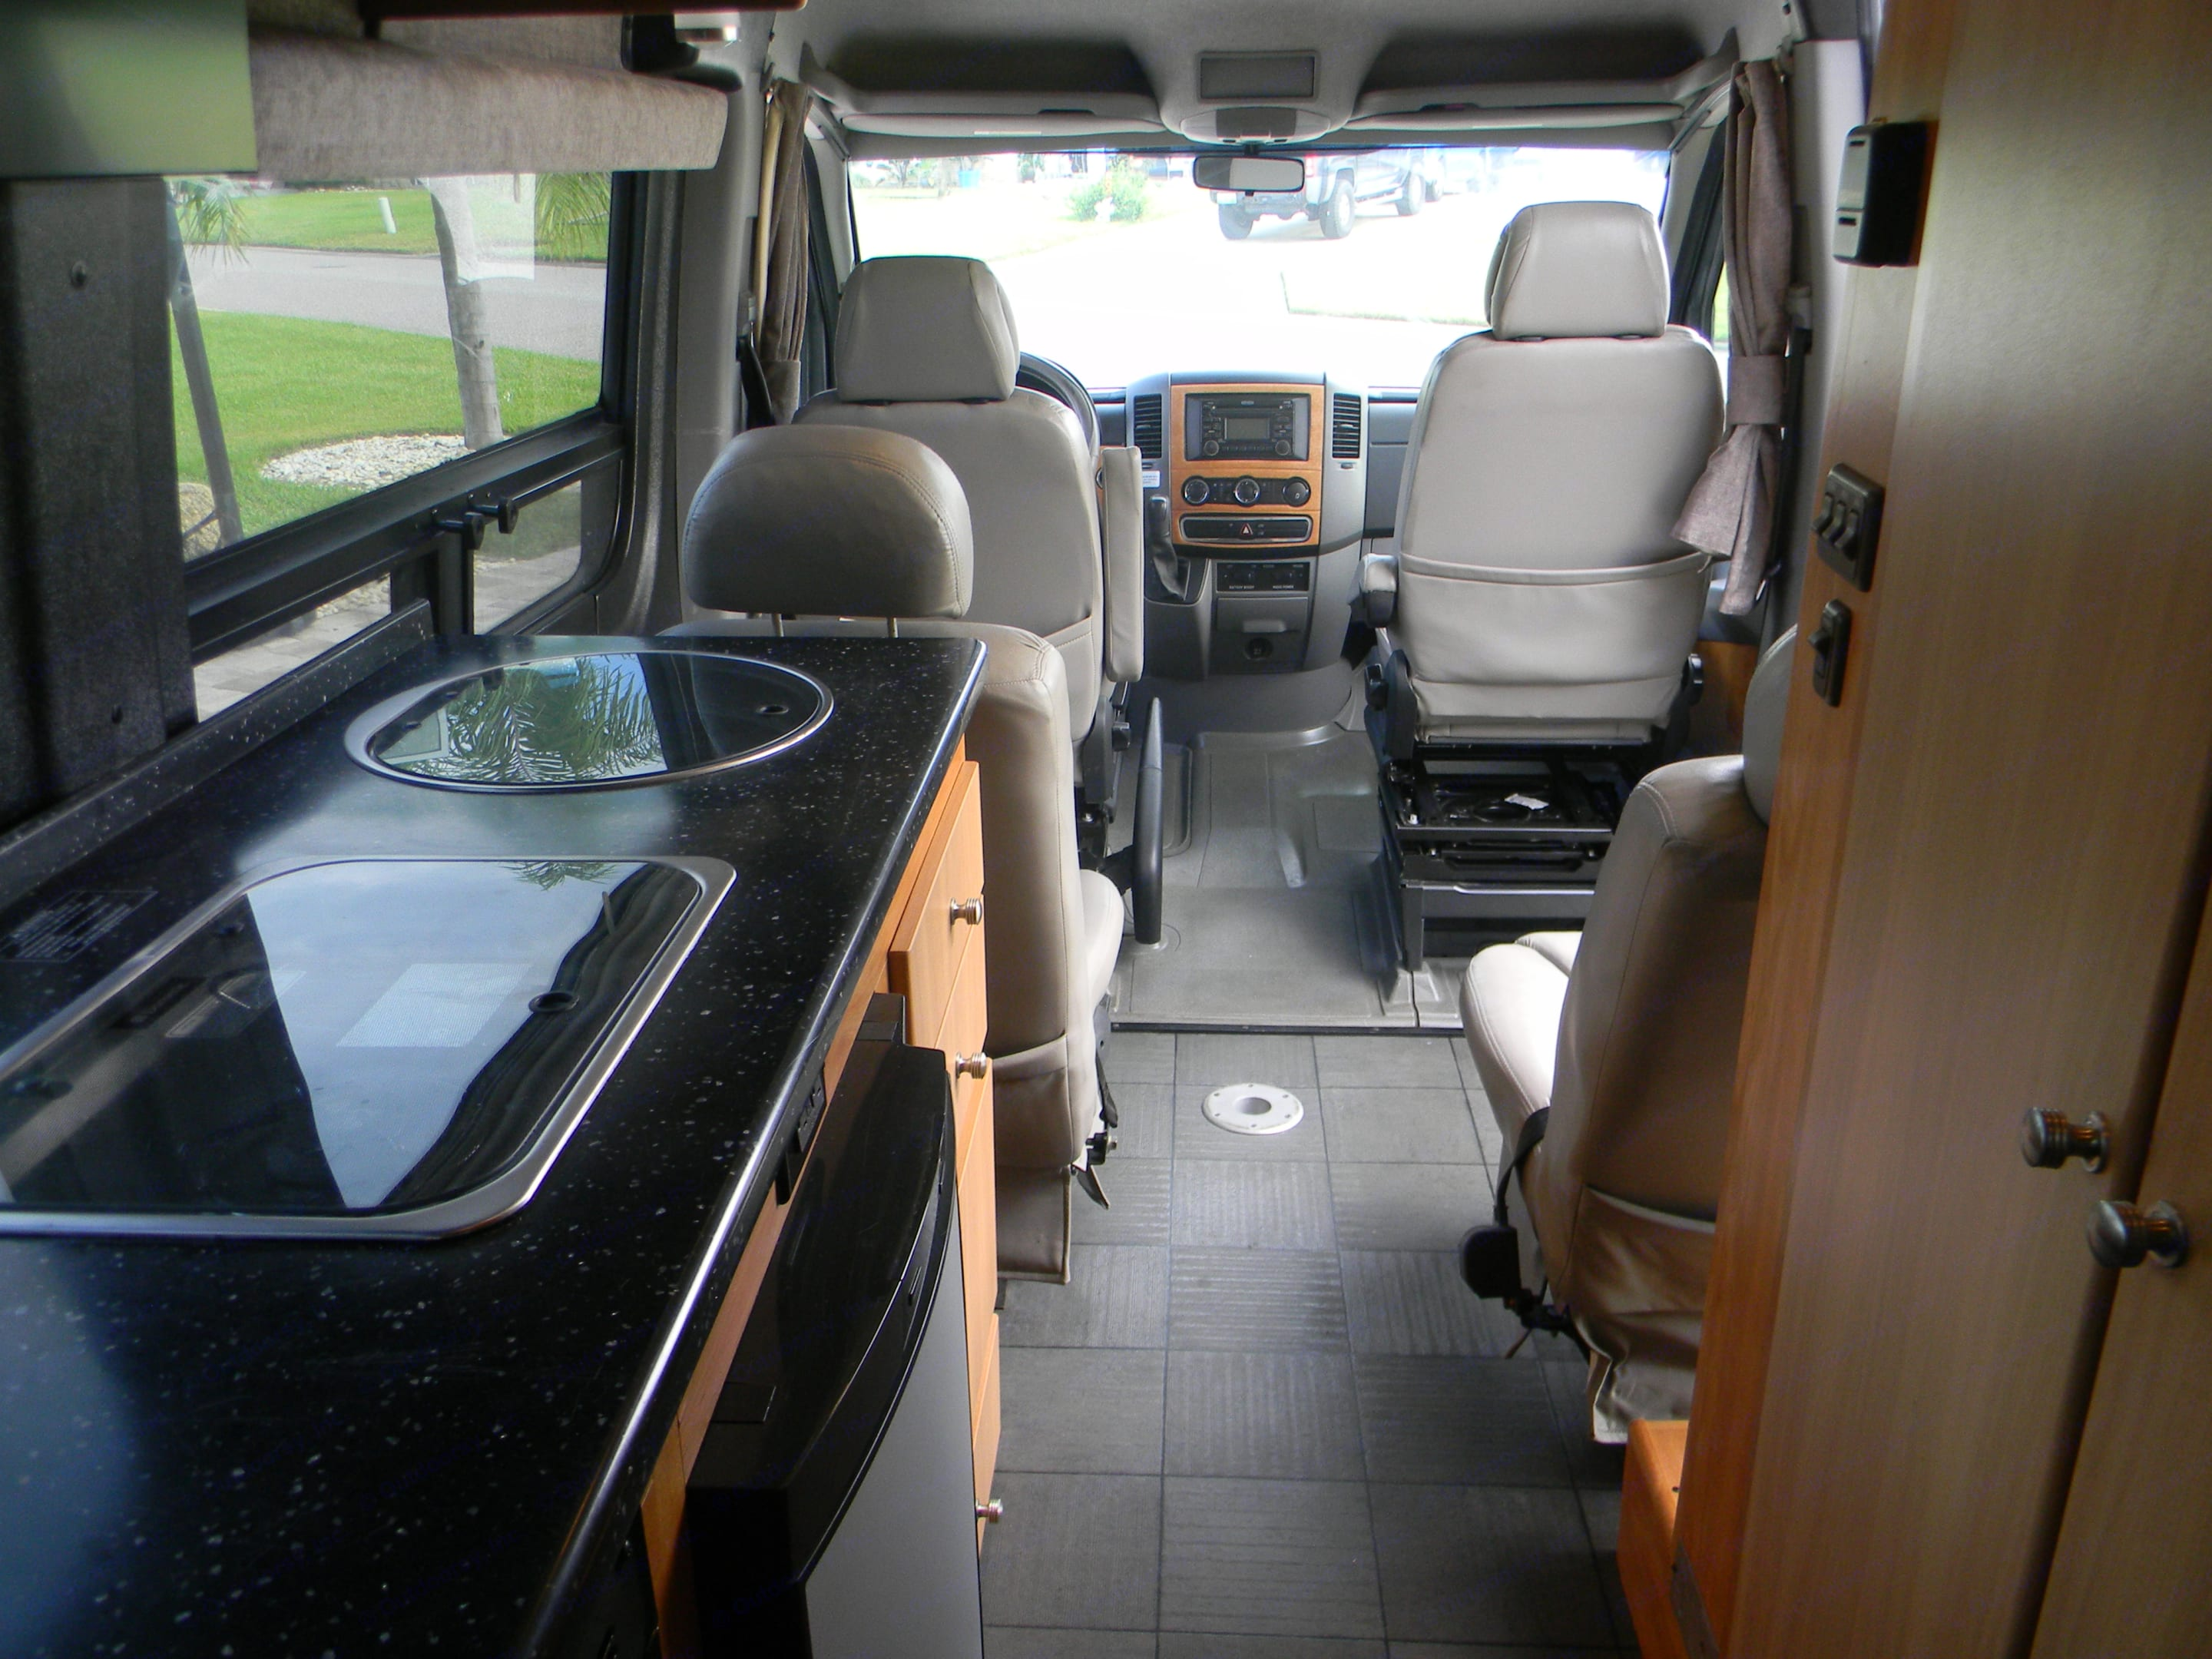 view from rear, galley on left and bathroom on right. Winnebago Era 2010